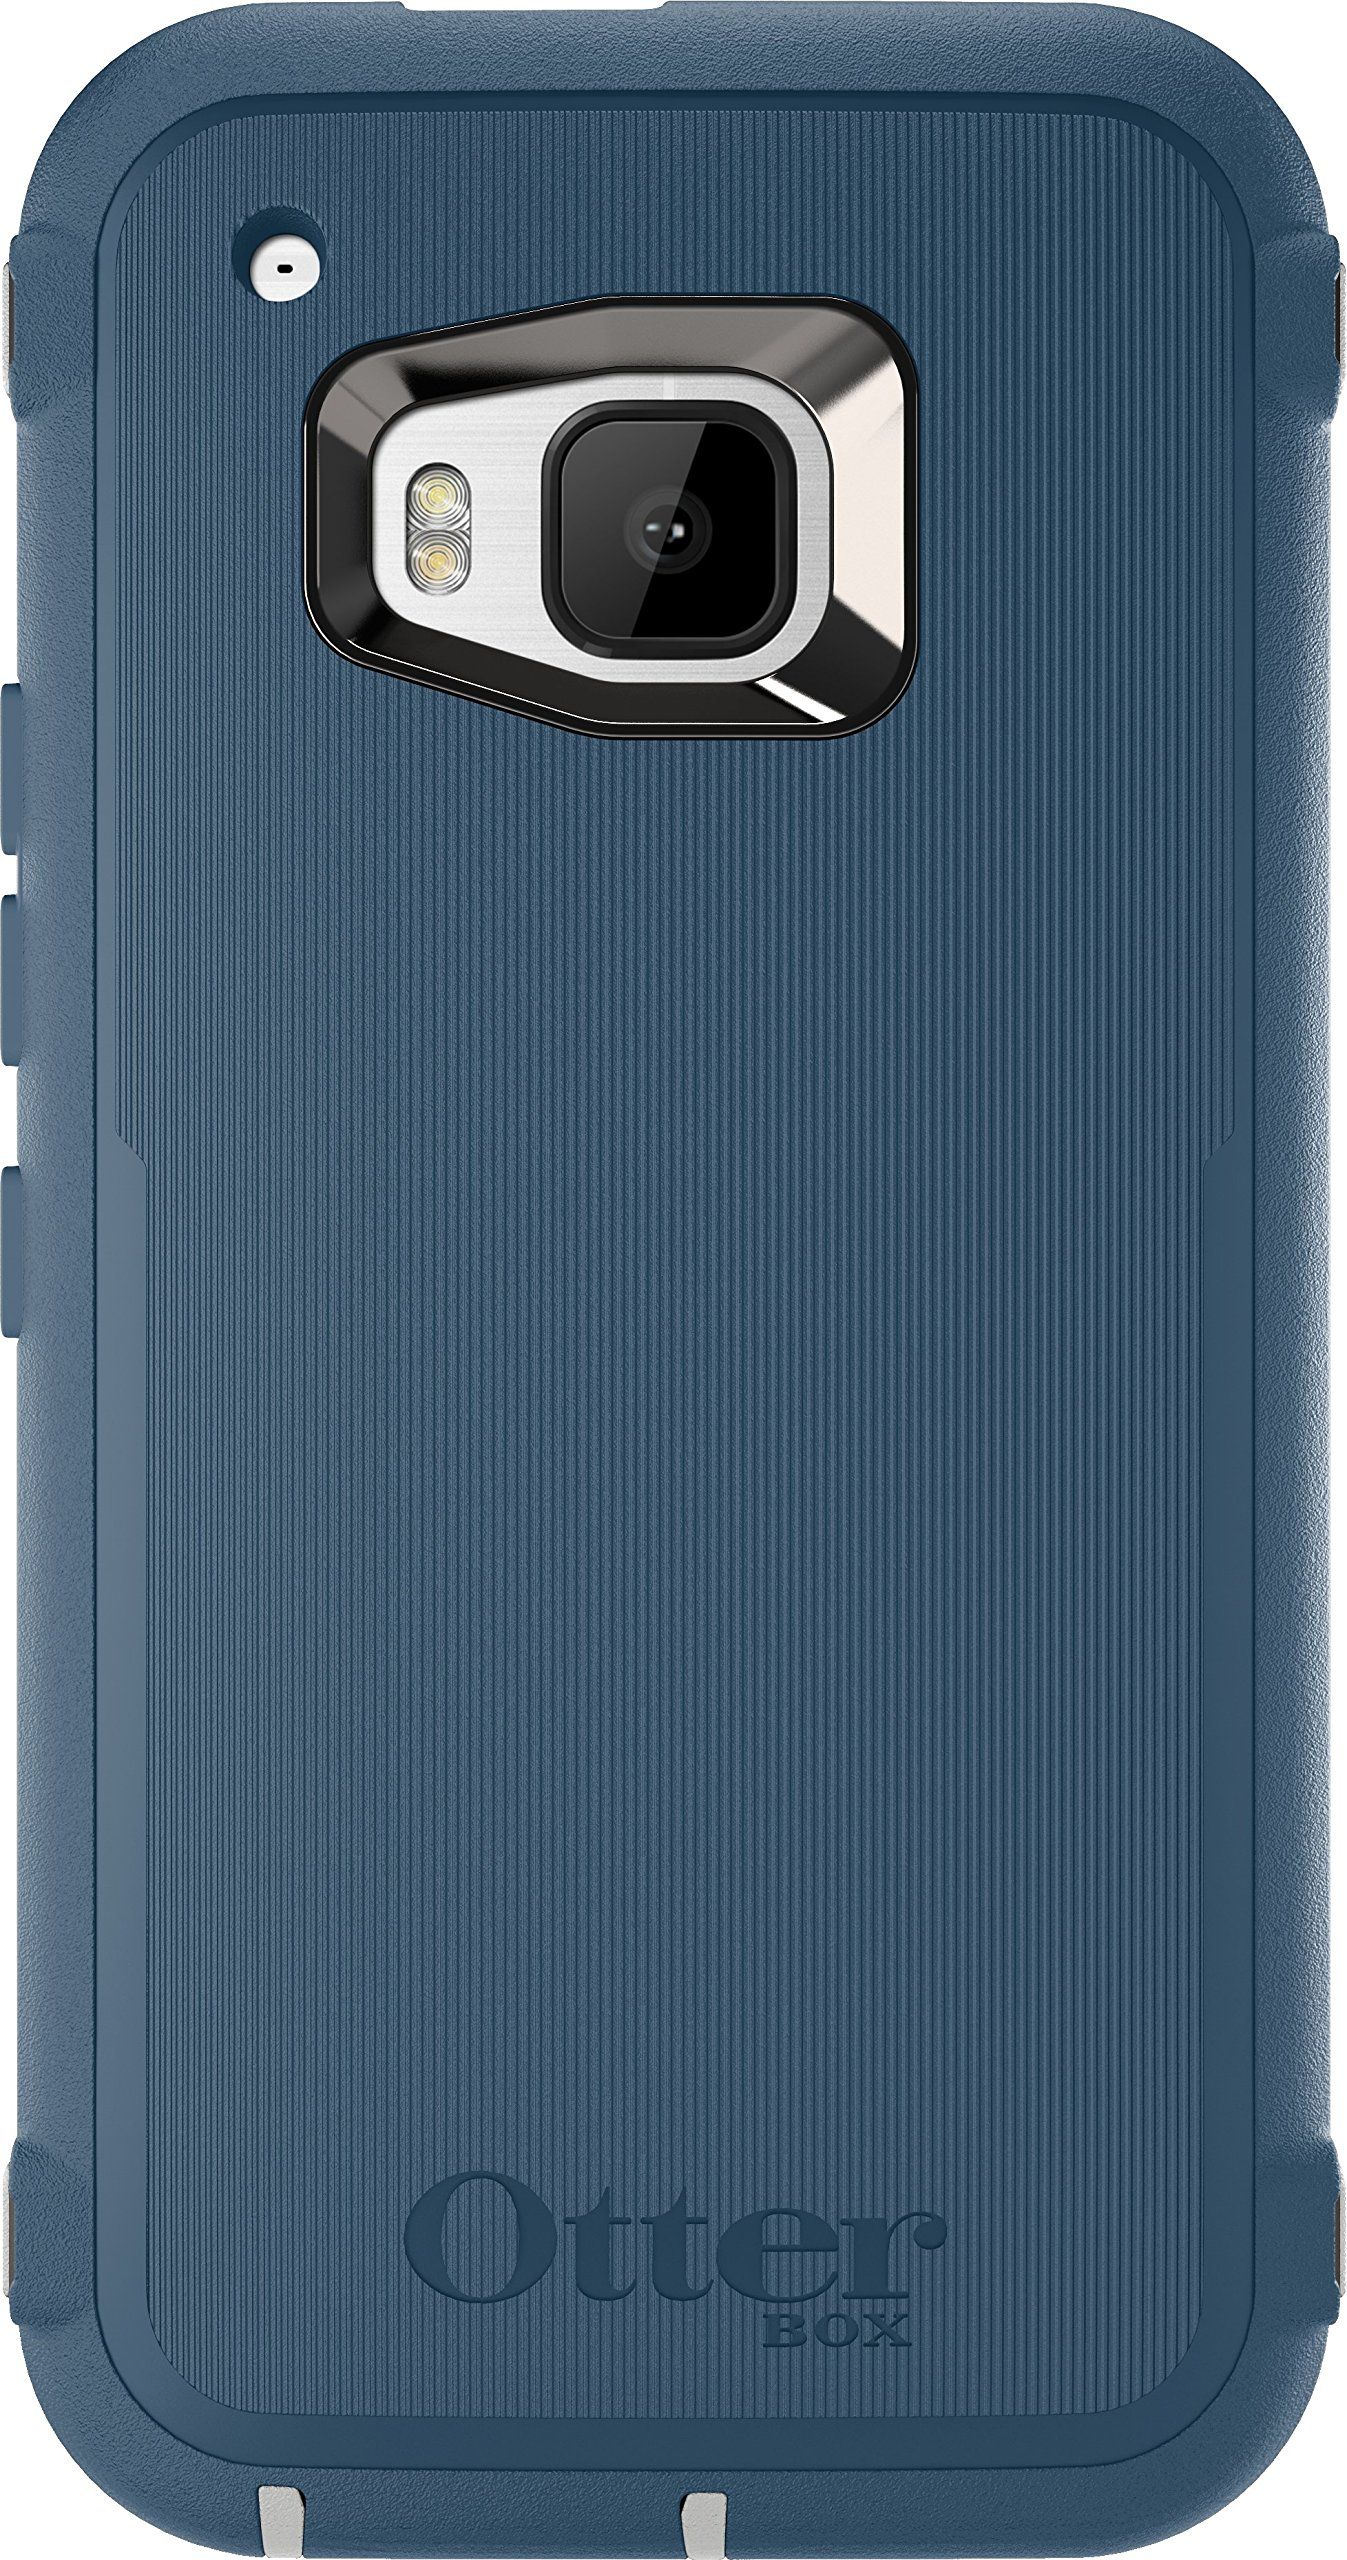 Funda Otterbox Defender Htc One M9 Causal Blue